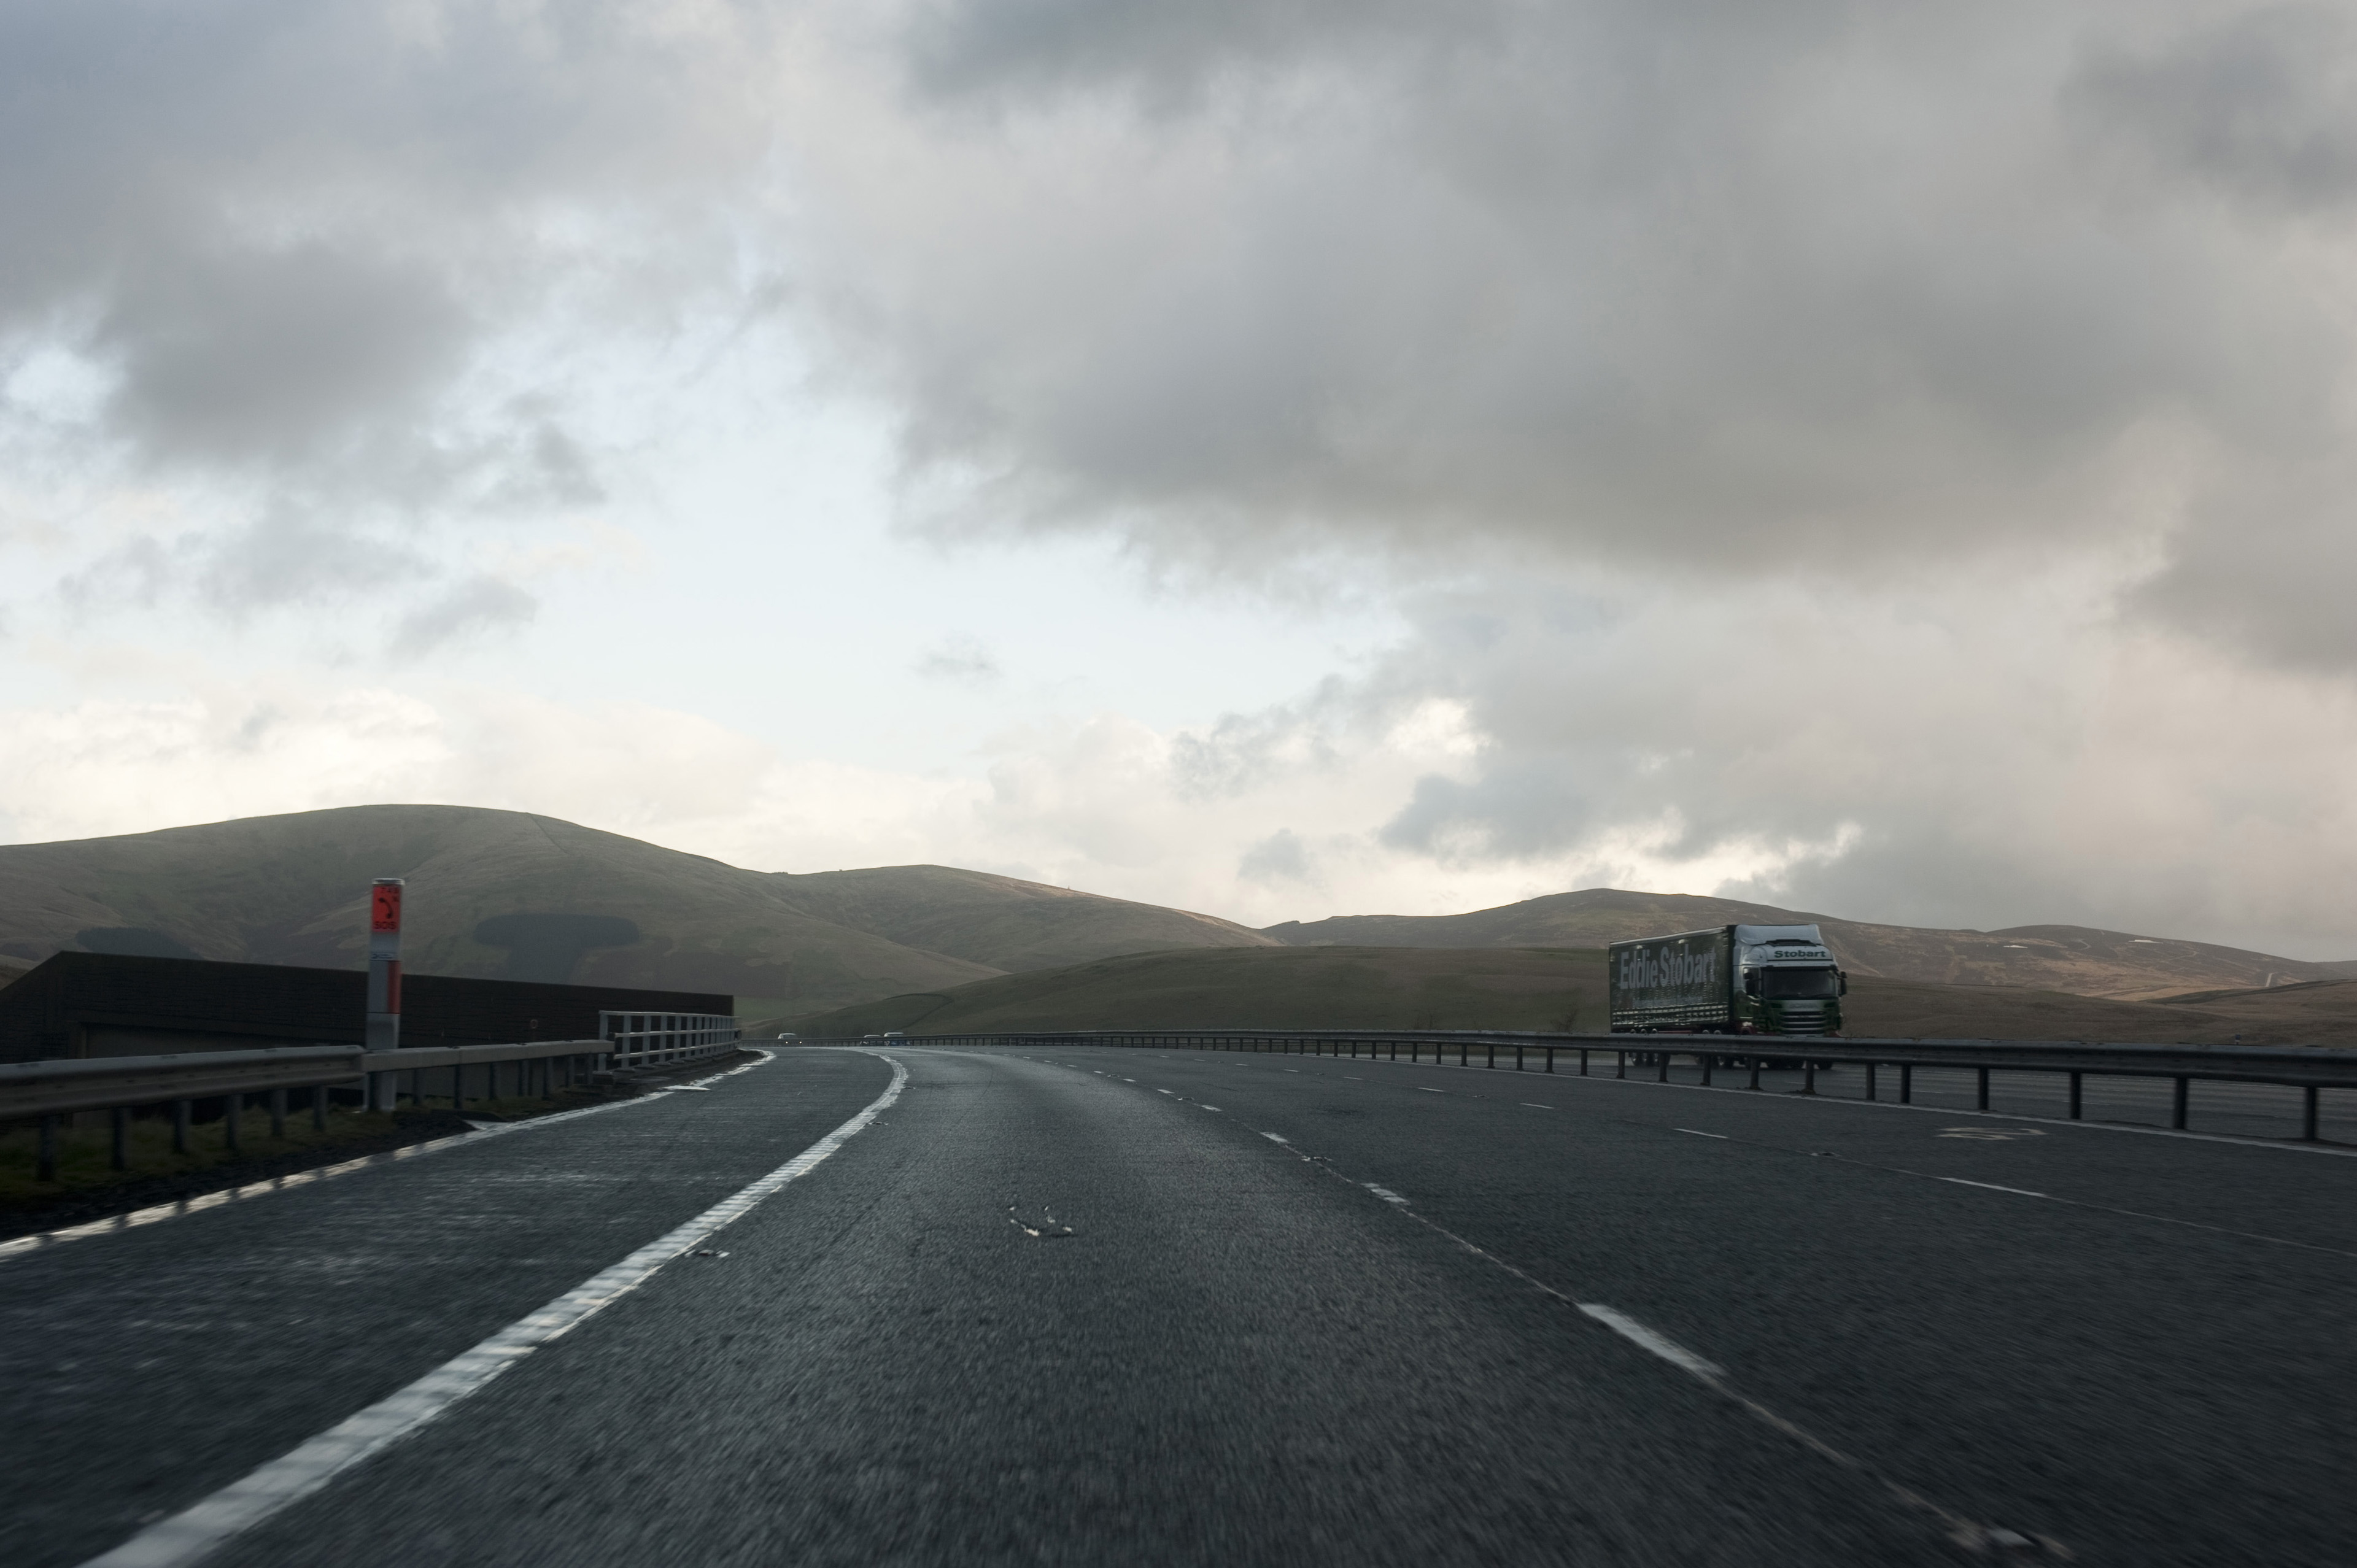 Traveling on a dual lane freeway with transport trucks and low lying stormy clouds, driver or passenger perspective